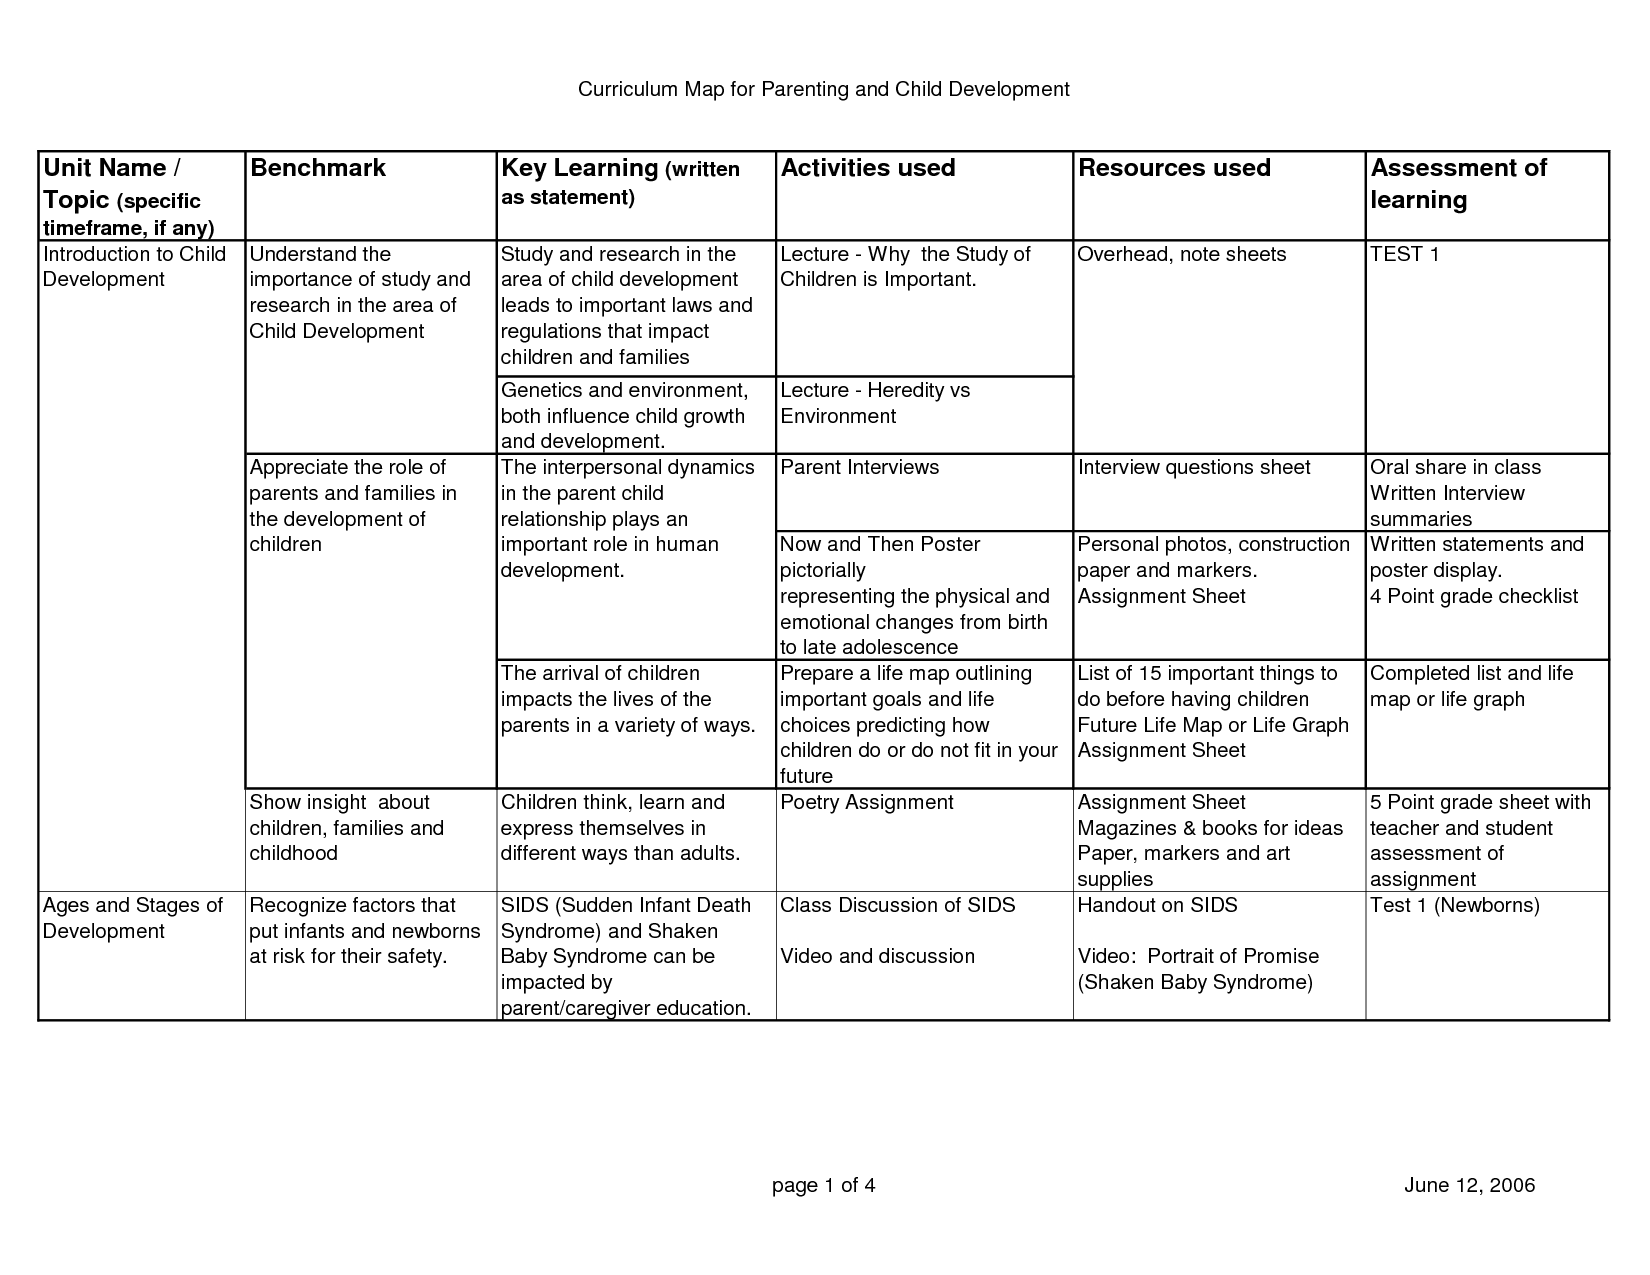 Cognitive Mode Worksheet